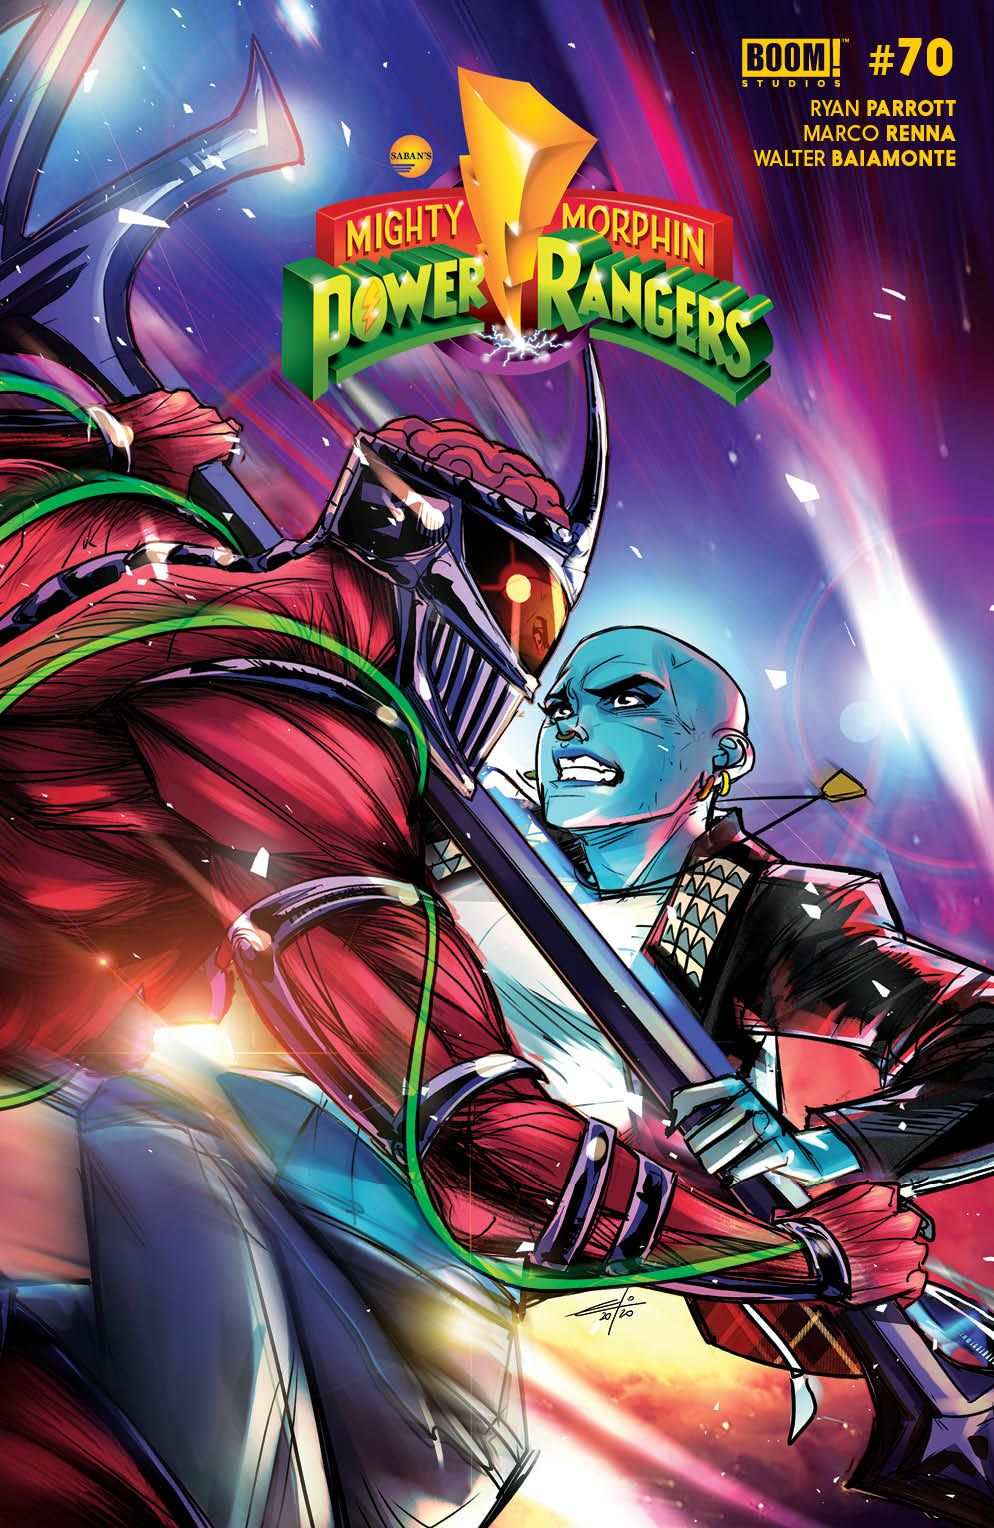 Mighty_Morphin_008_Cover_B_Legacy_Variant-1 ComicList Previews: MIGHTY MORPHIN #8